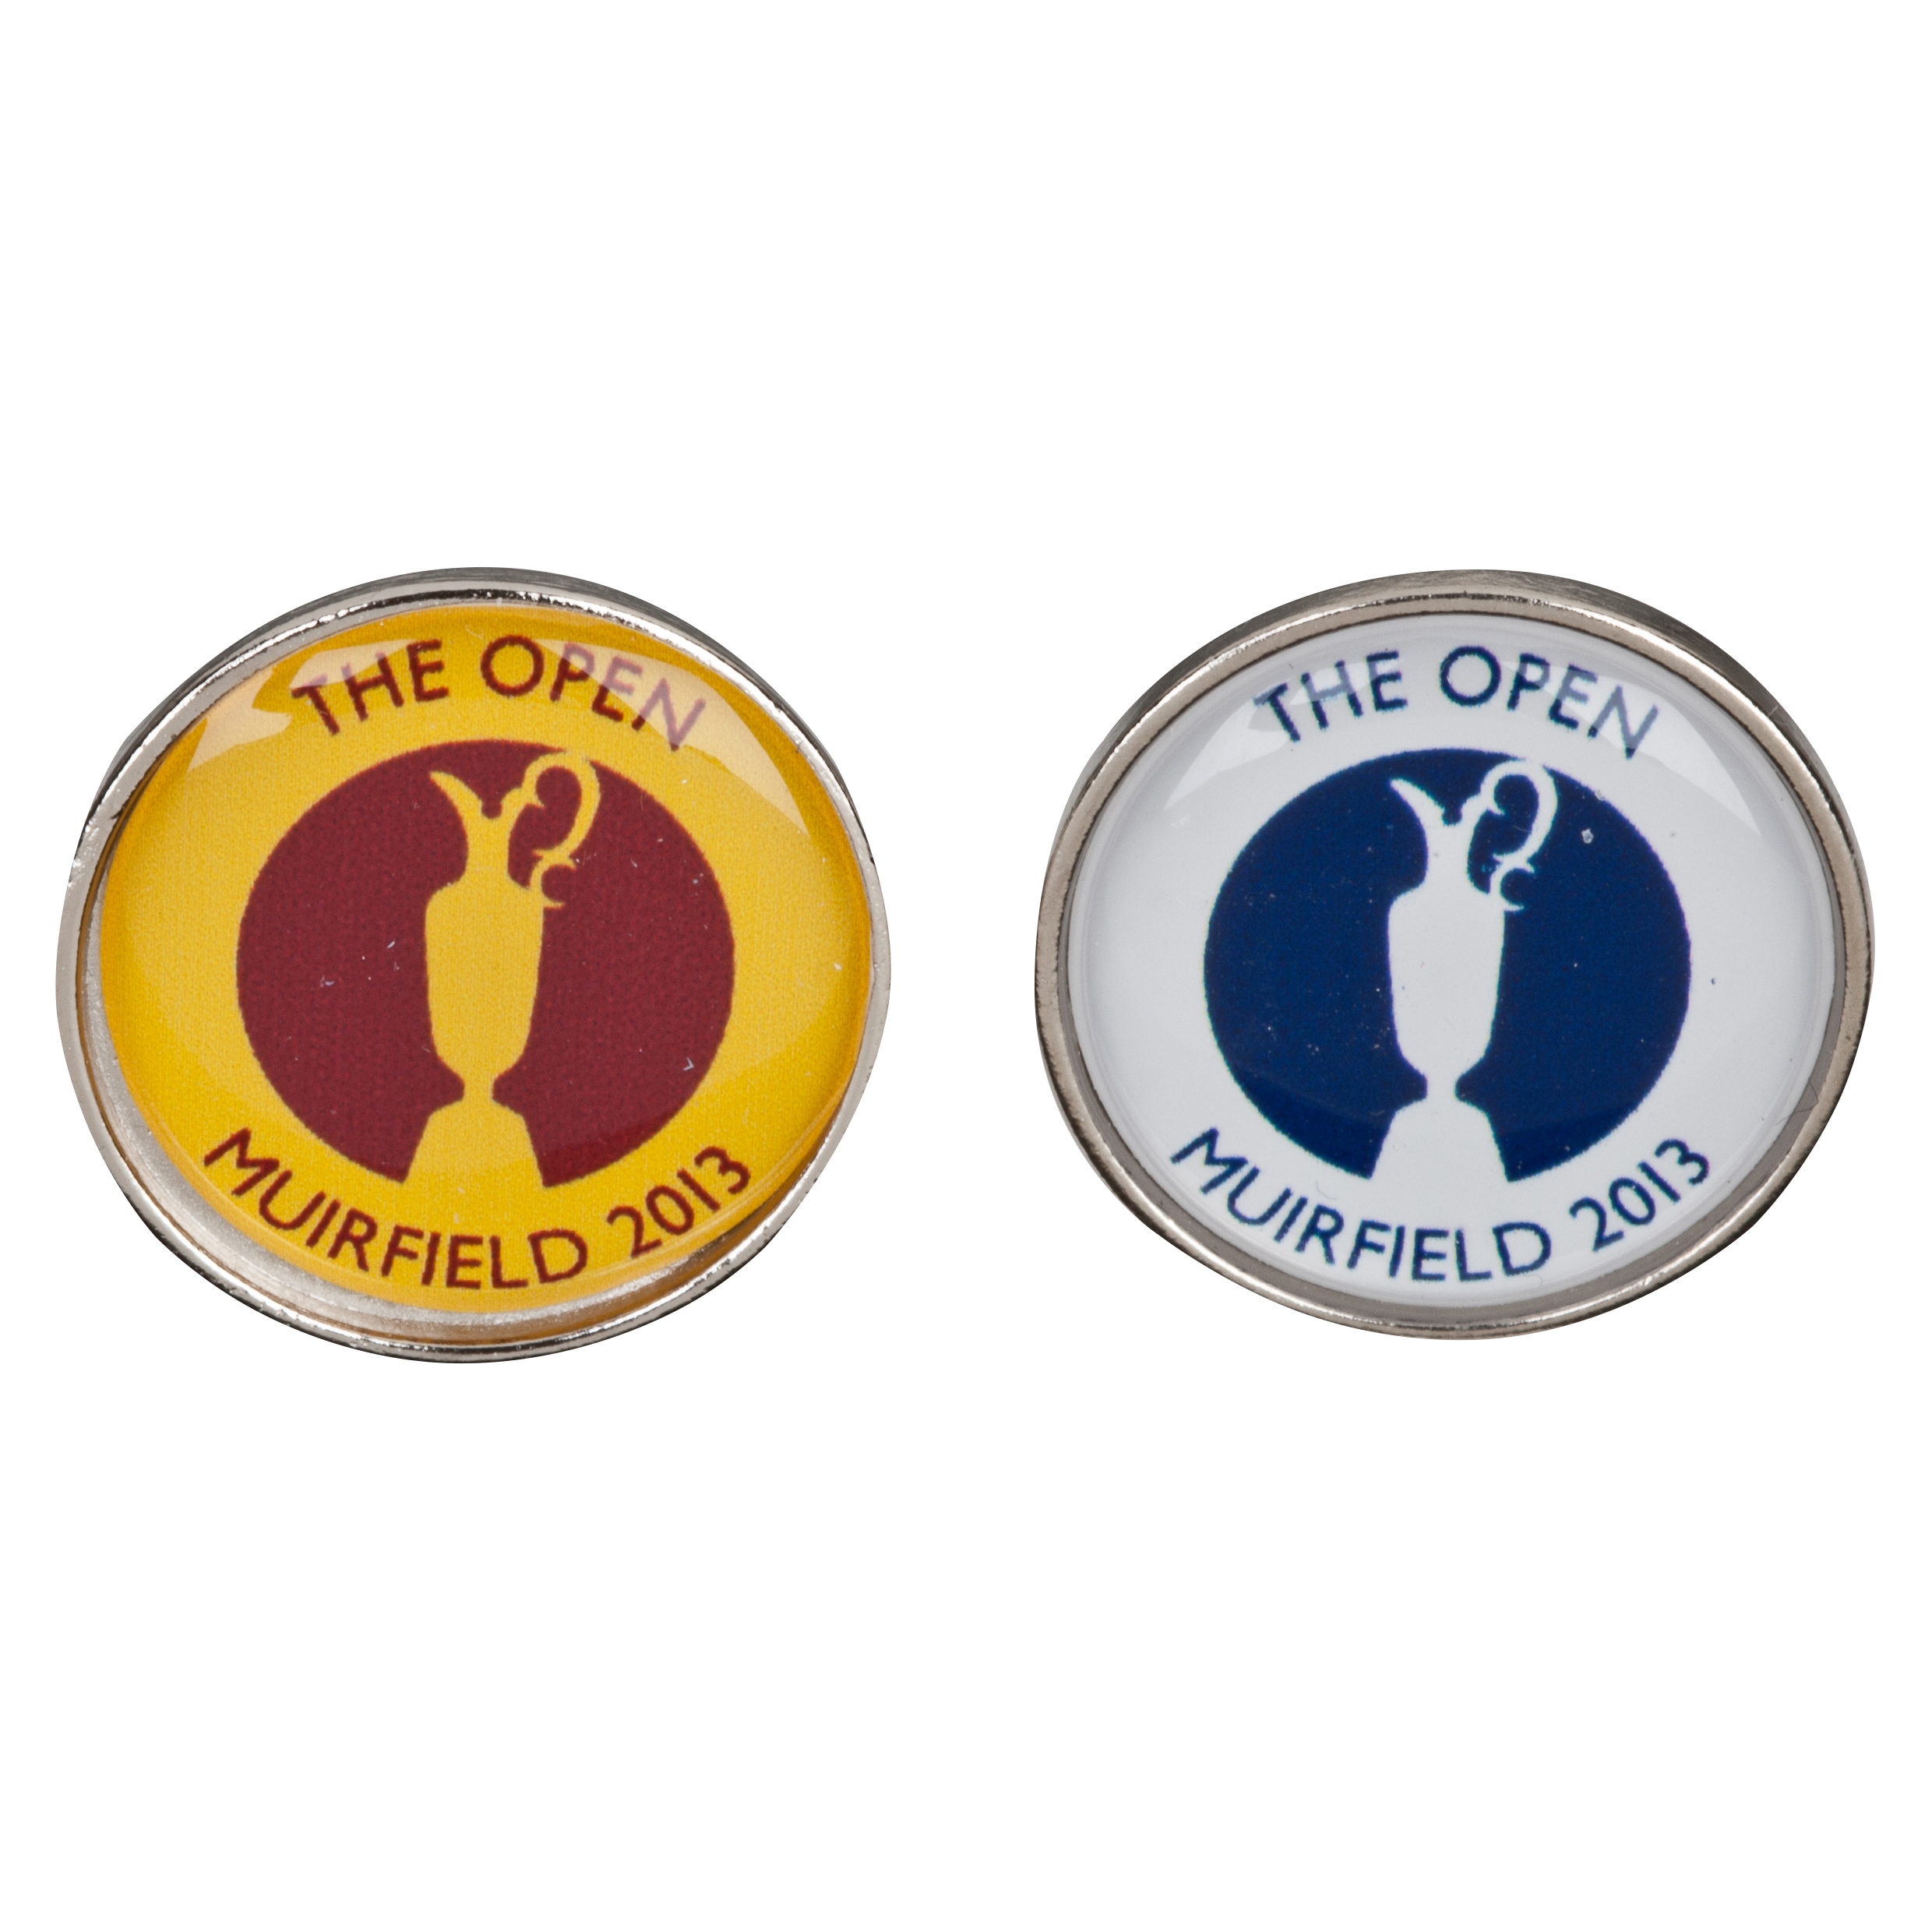 Open Golf Championship 2013 Muirfield Ball Markers White